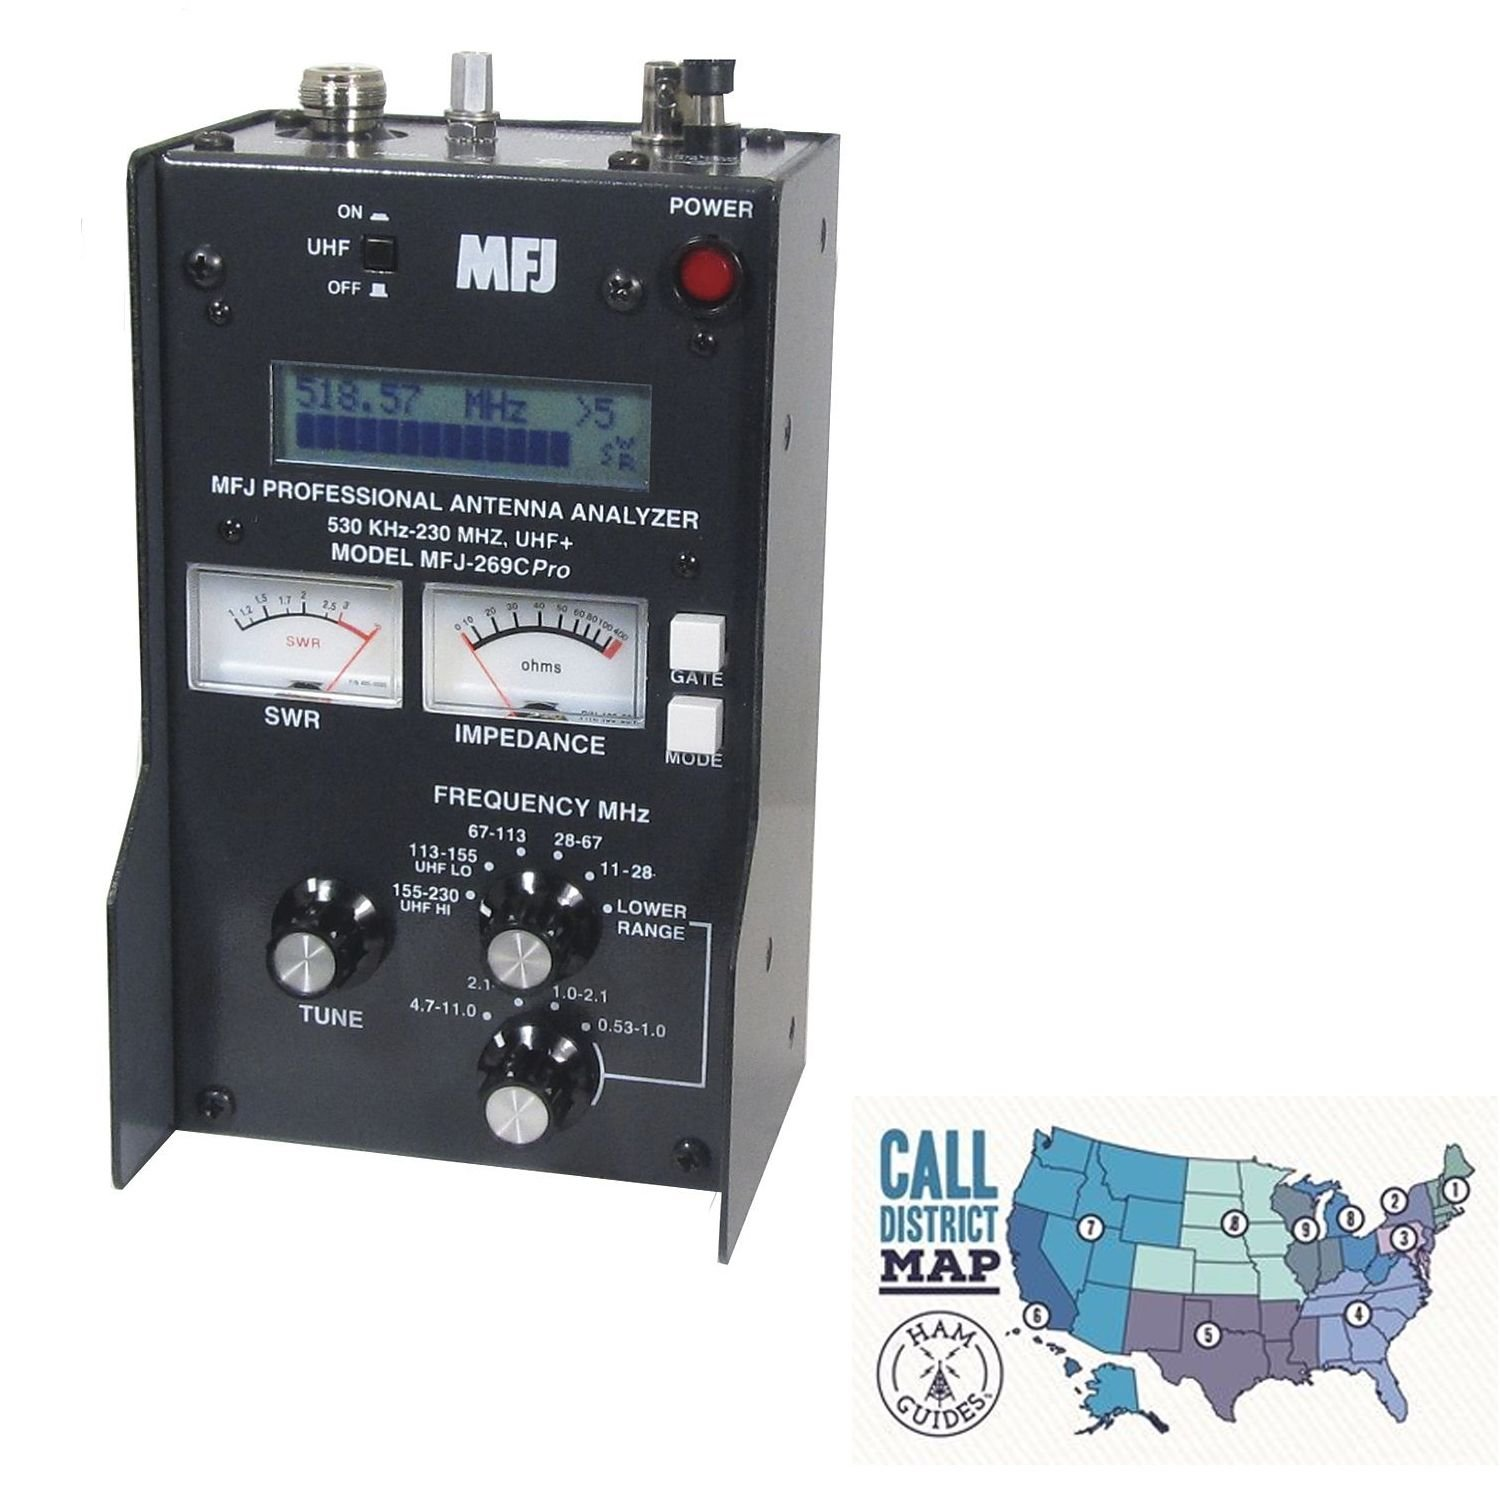 MFJ HF/VHF/UHF antenna analyzer w/meters and Ham Guides TM Pocket Reference Card Bundle